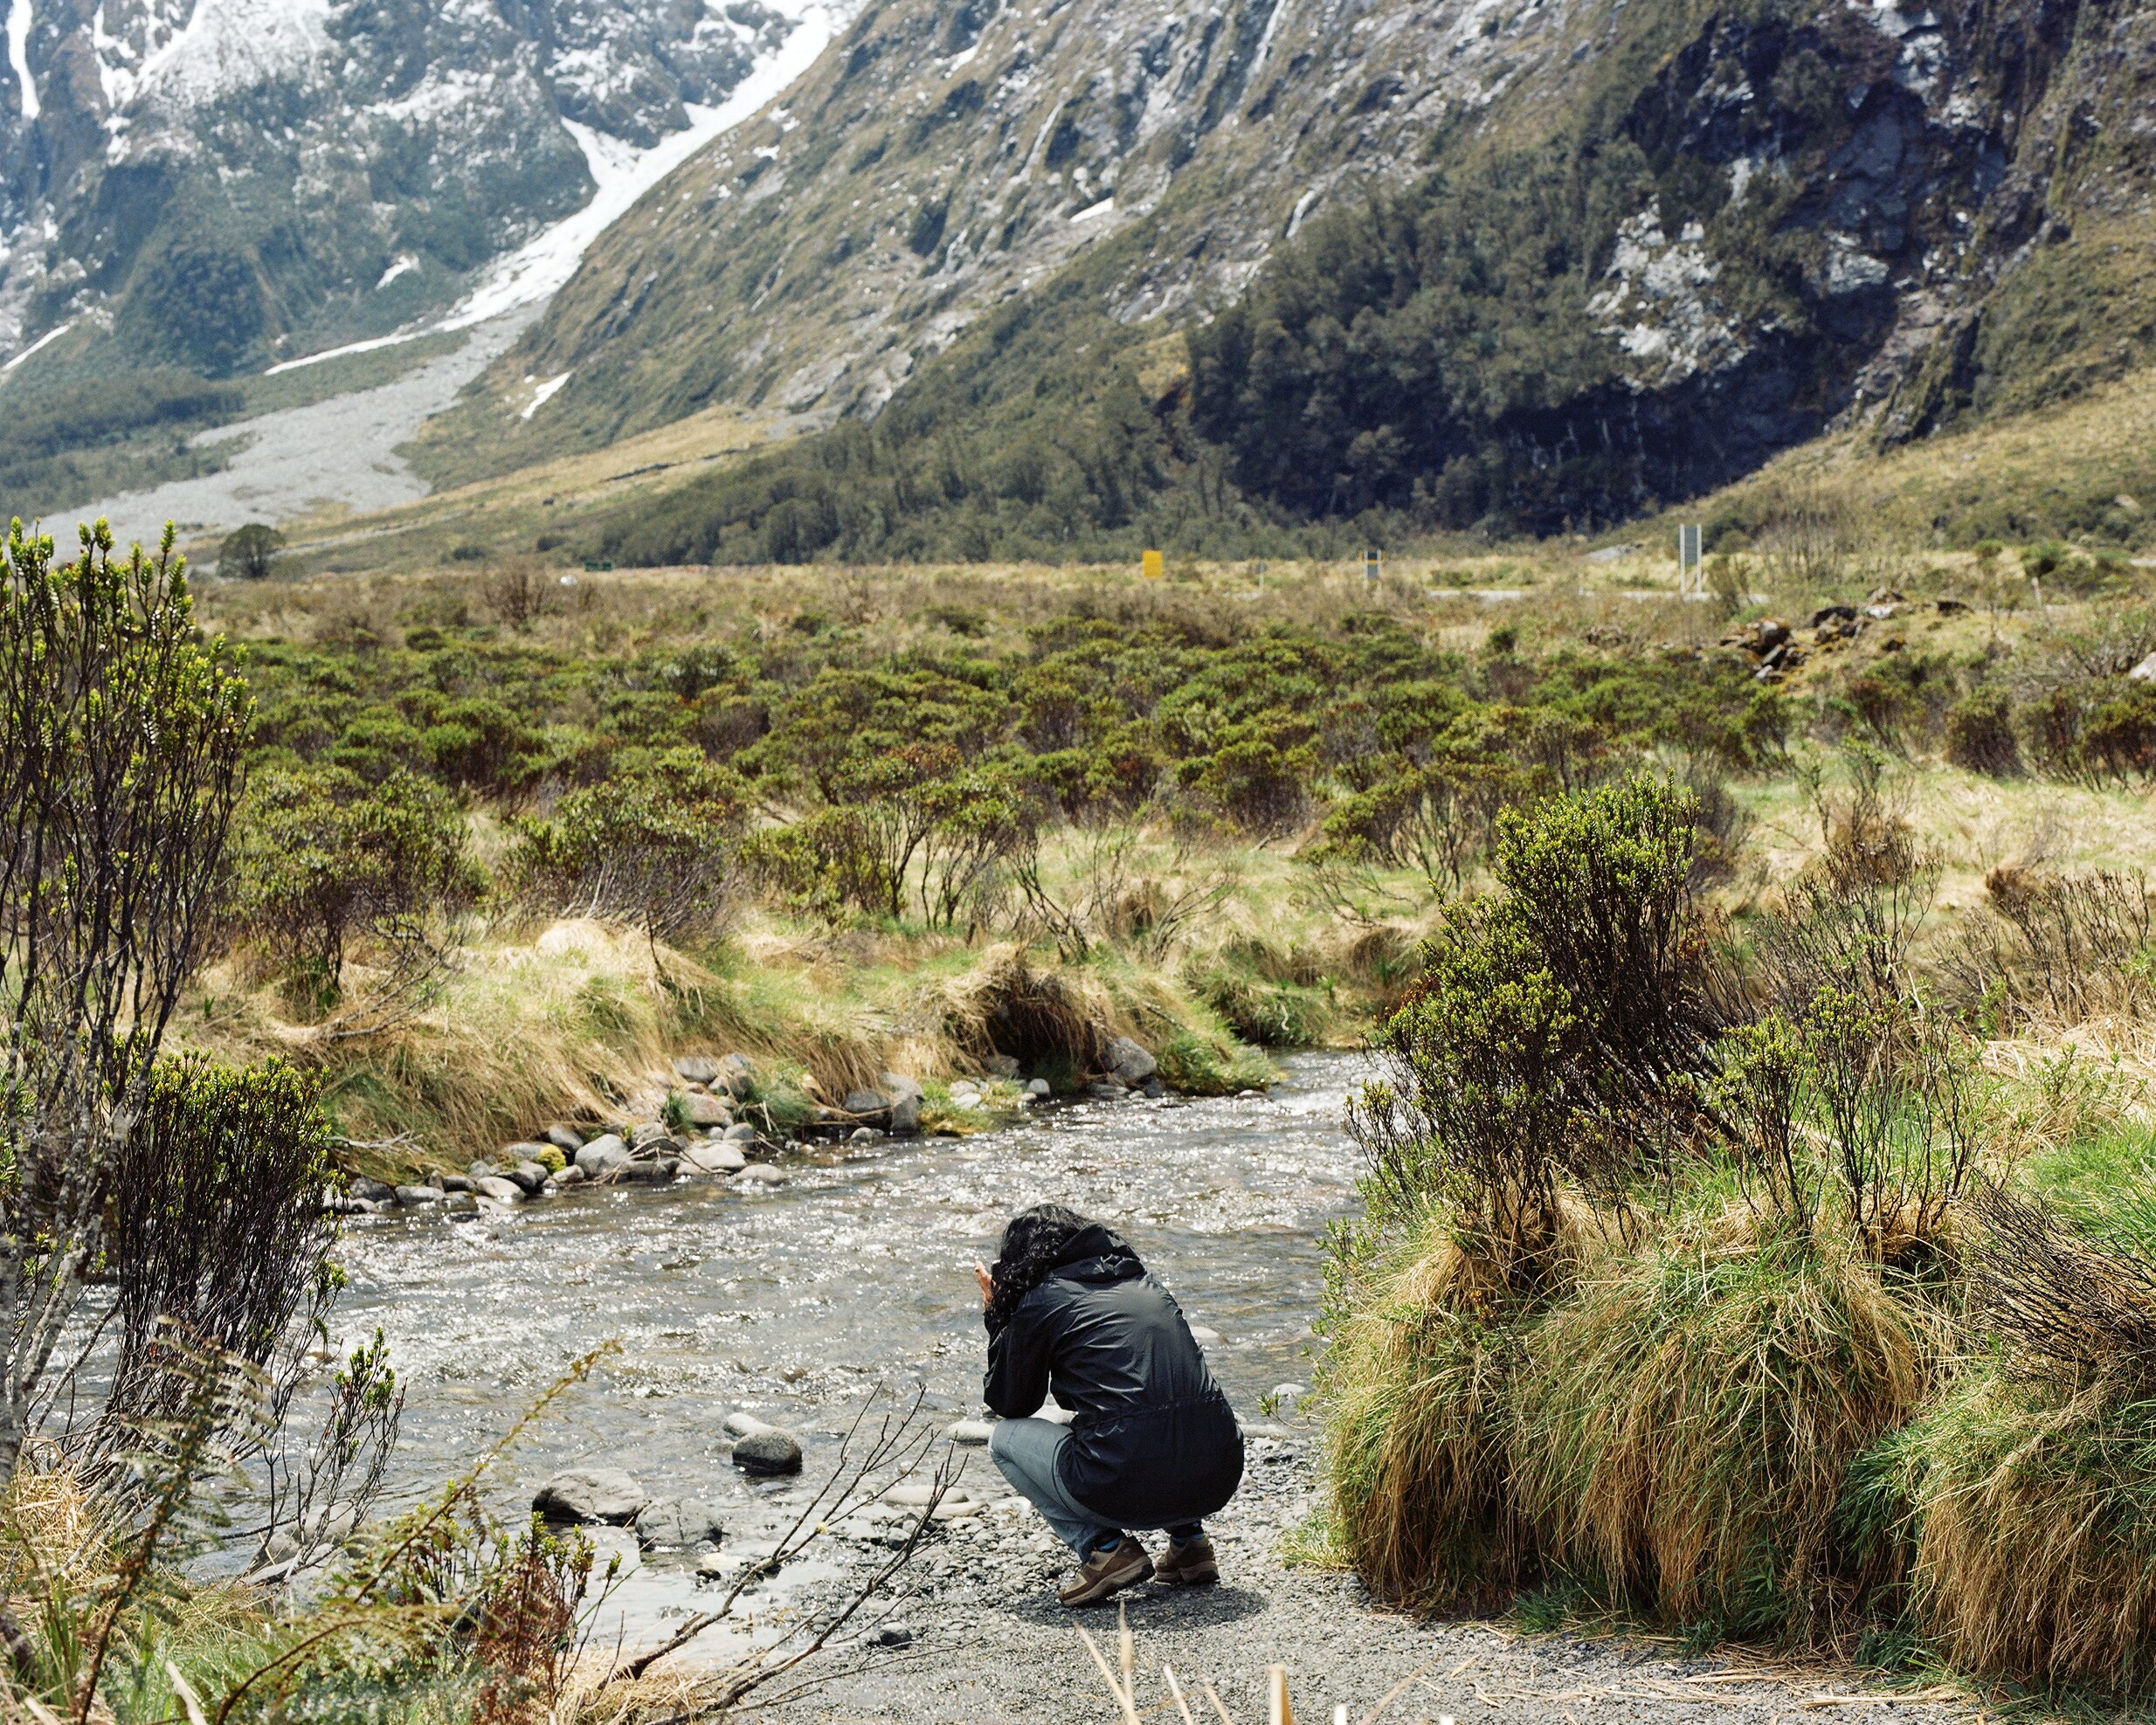 HANNAH ROTHKUO PHOTOGRAPHY: DESTINATION FIORDLAND